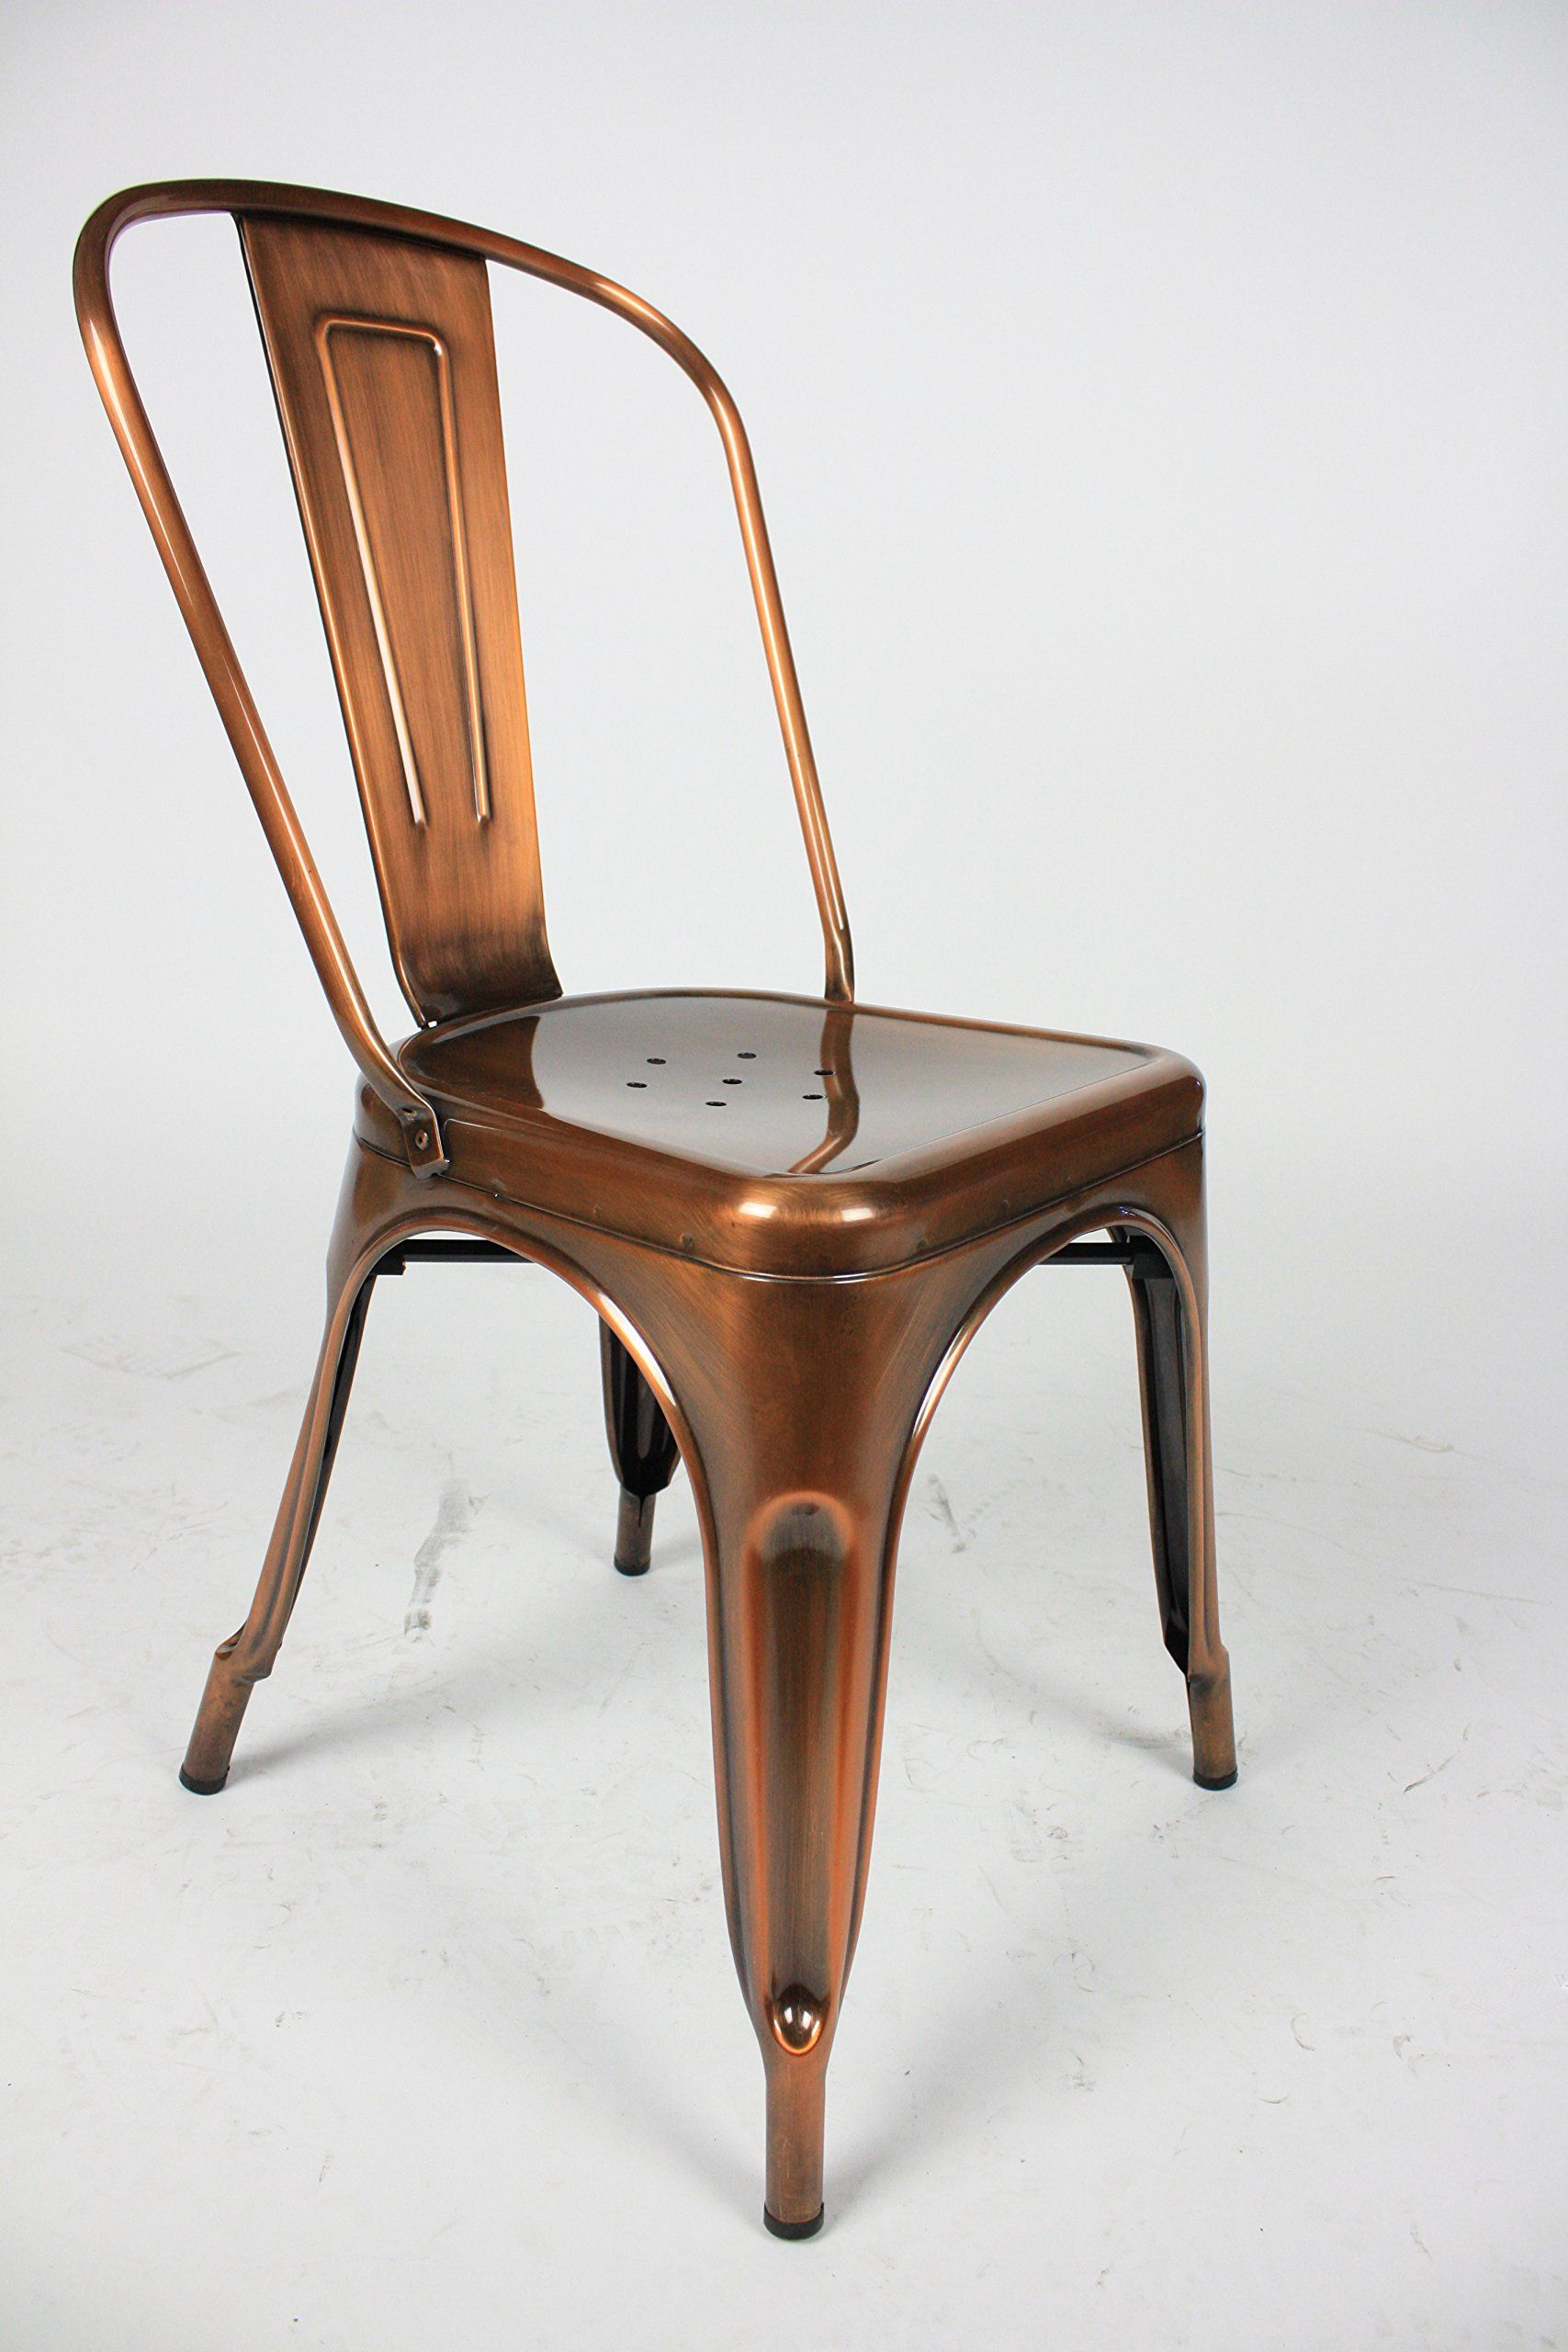 amazon kitchen chairs Amazon com Marais French Style Cafe Dining Chair in Gloss Copper Finish Adjustable